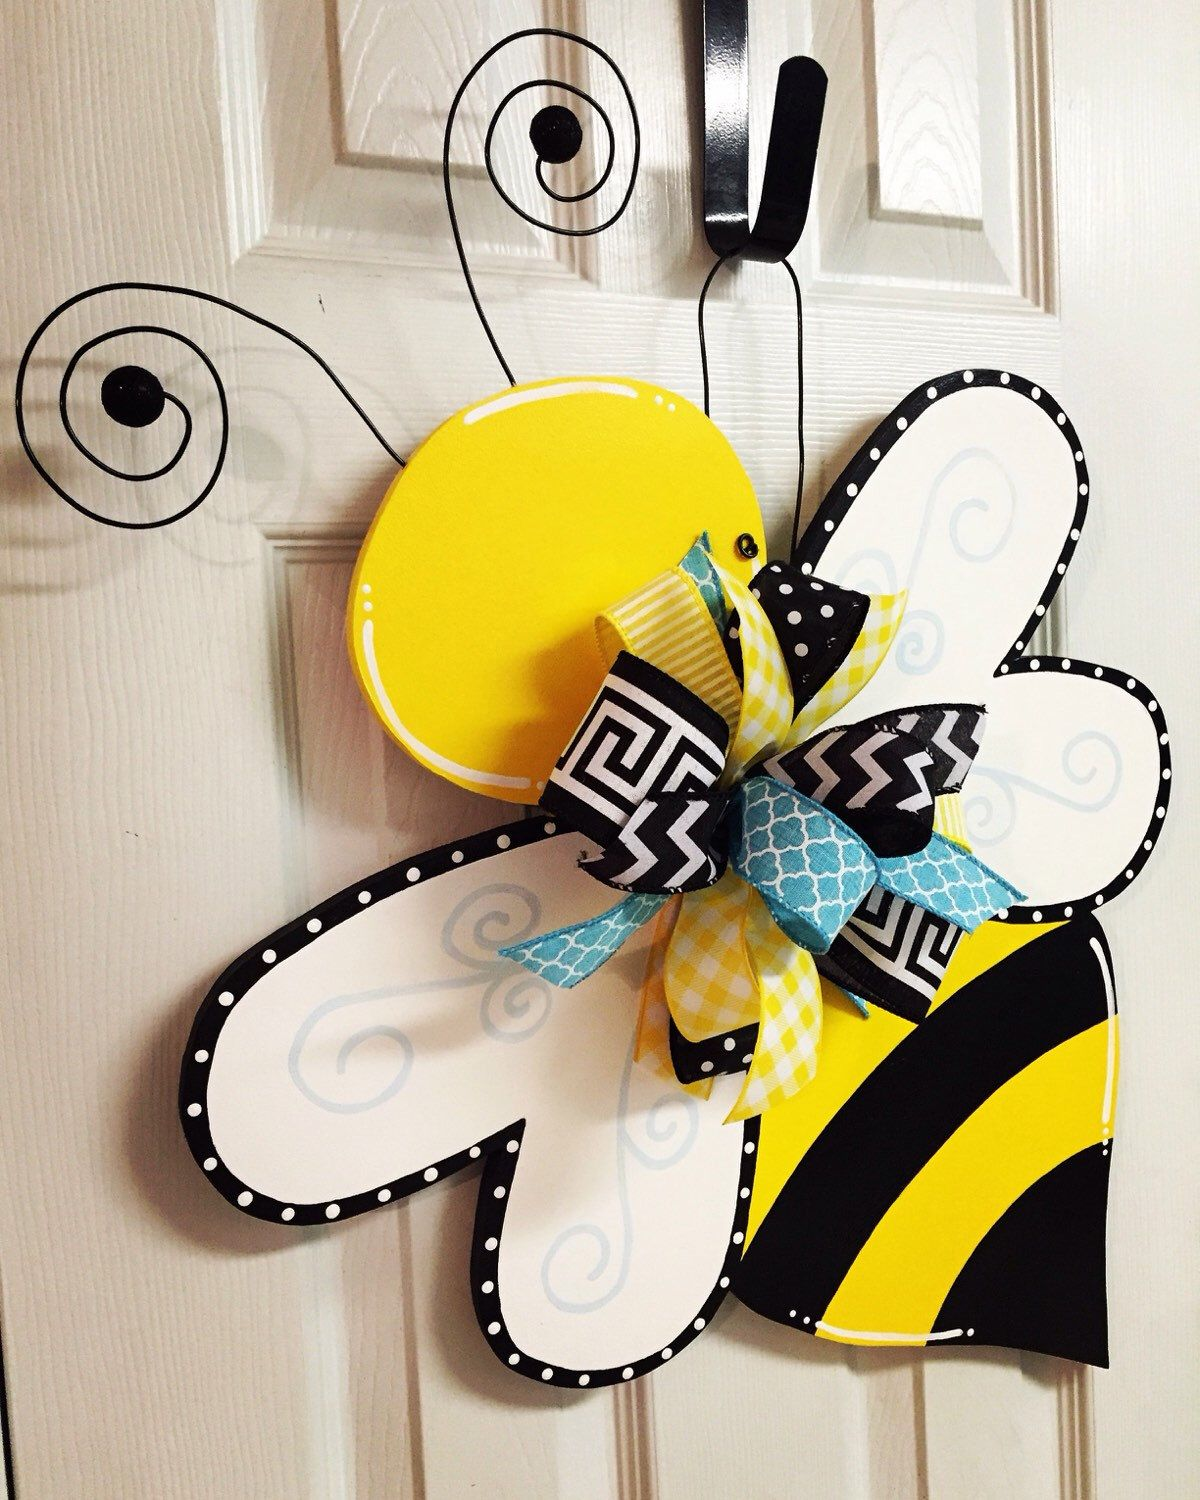 What A Cute Decoration For The Spring And Summer Season This Bumble Bee Door Hanger Is Hand Painted On Blonde Wood Sprayed With An Acrylic Top Coat